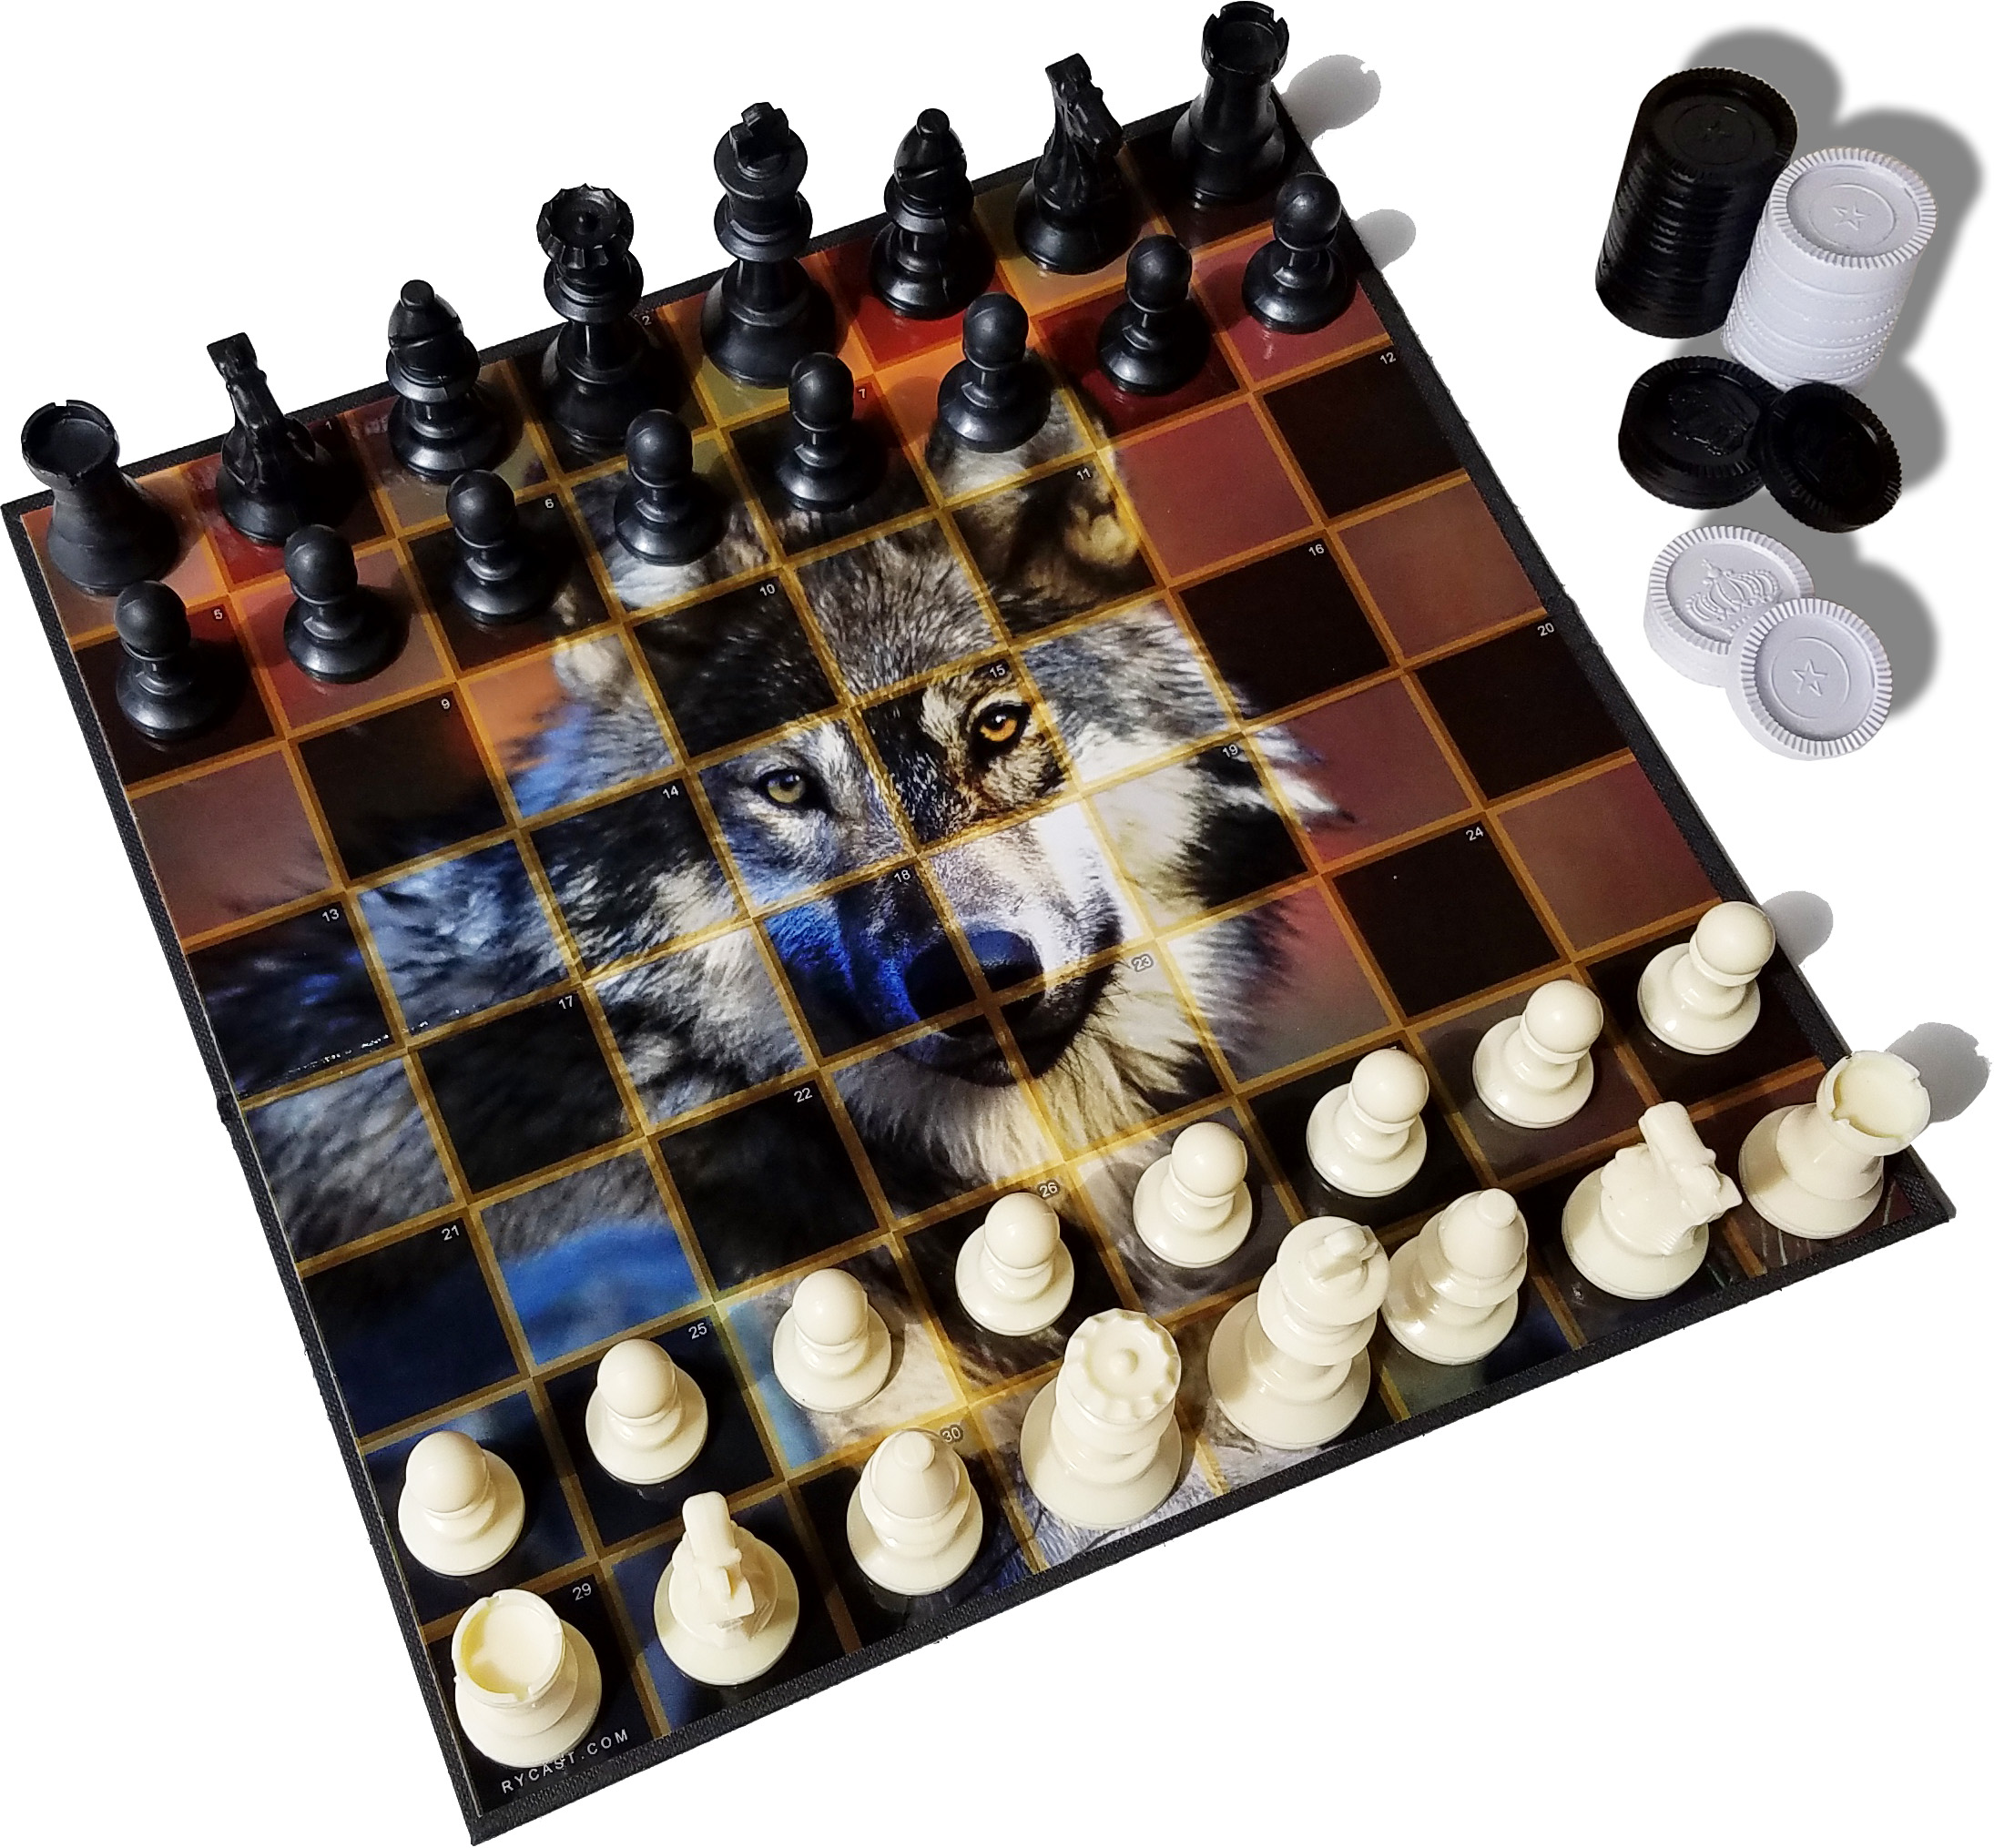 Chess and Checkers Set, Convenient Size, Premium Board, Wolf Themed